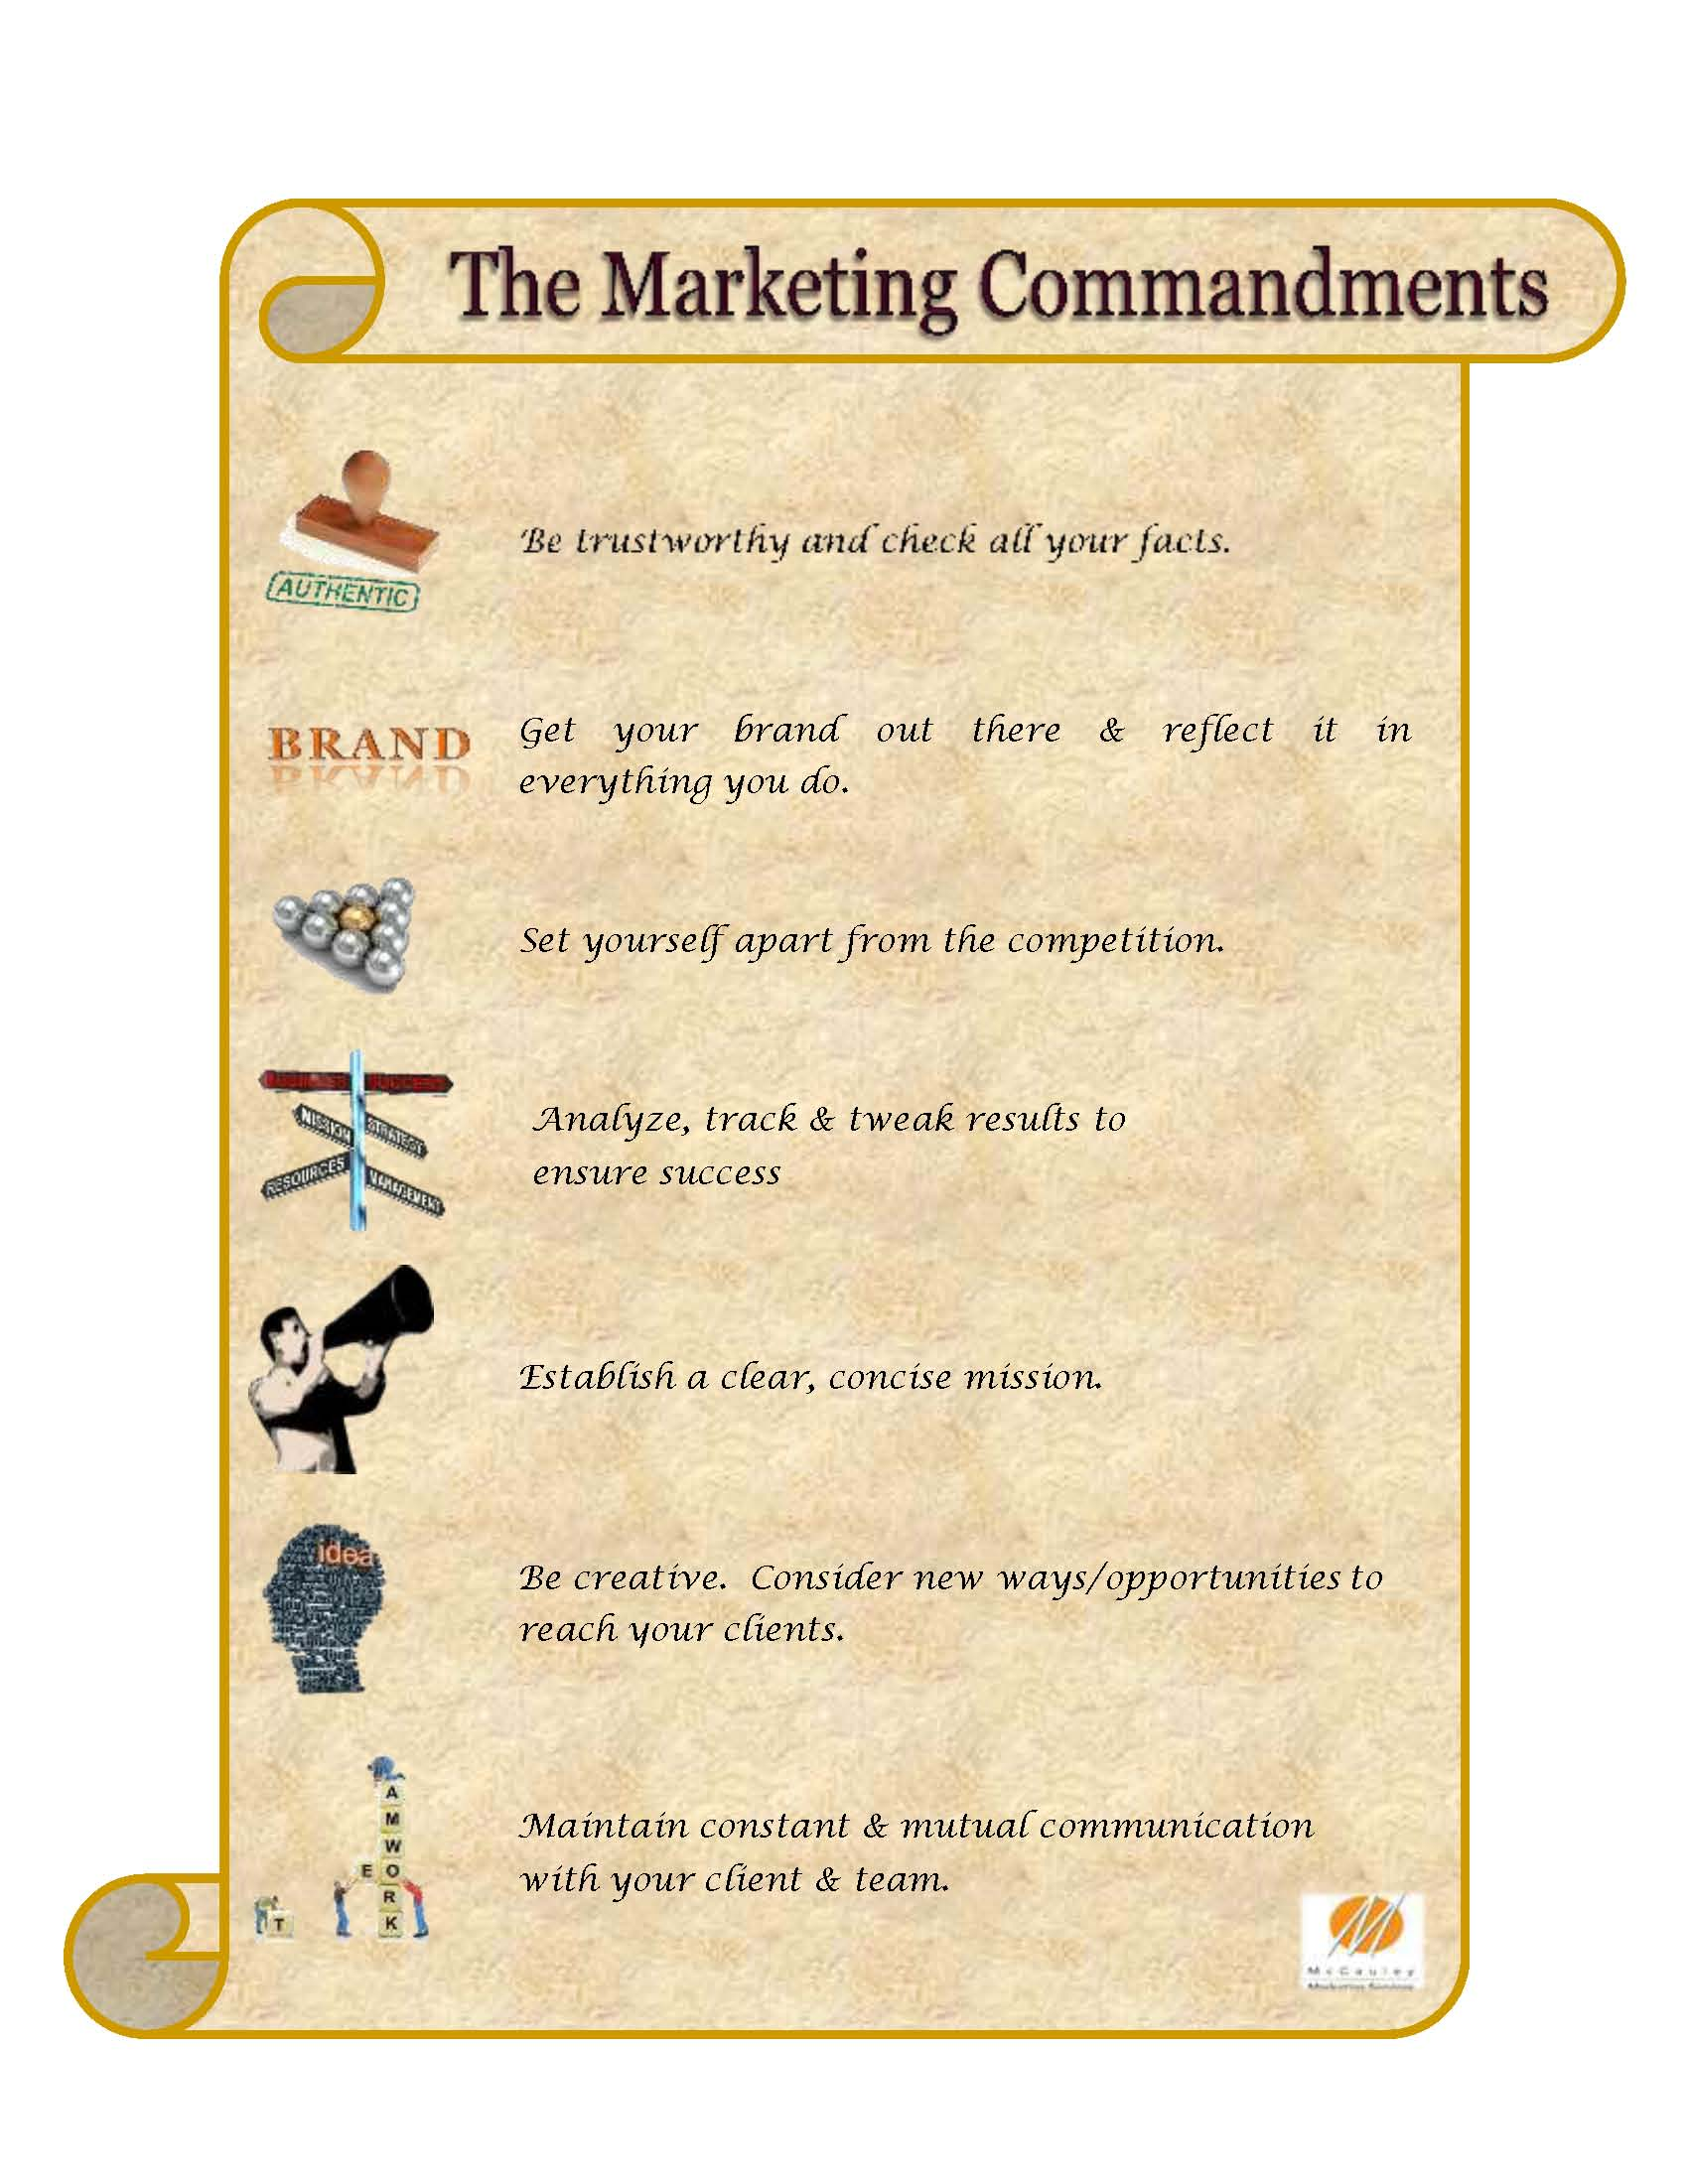 MCS The Marketing Commandments graphic FINAL